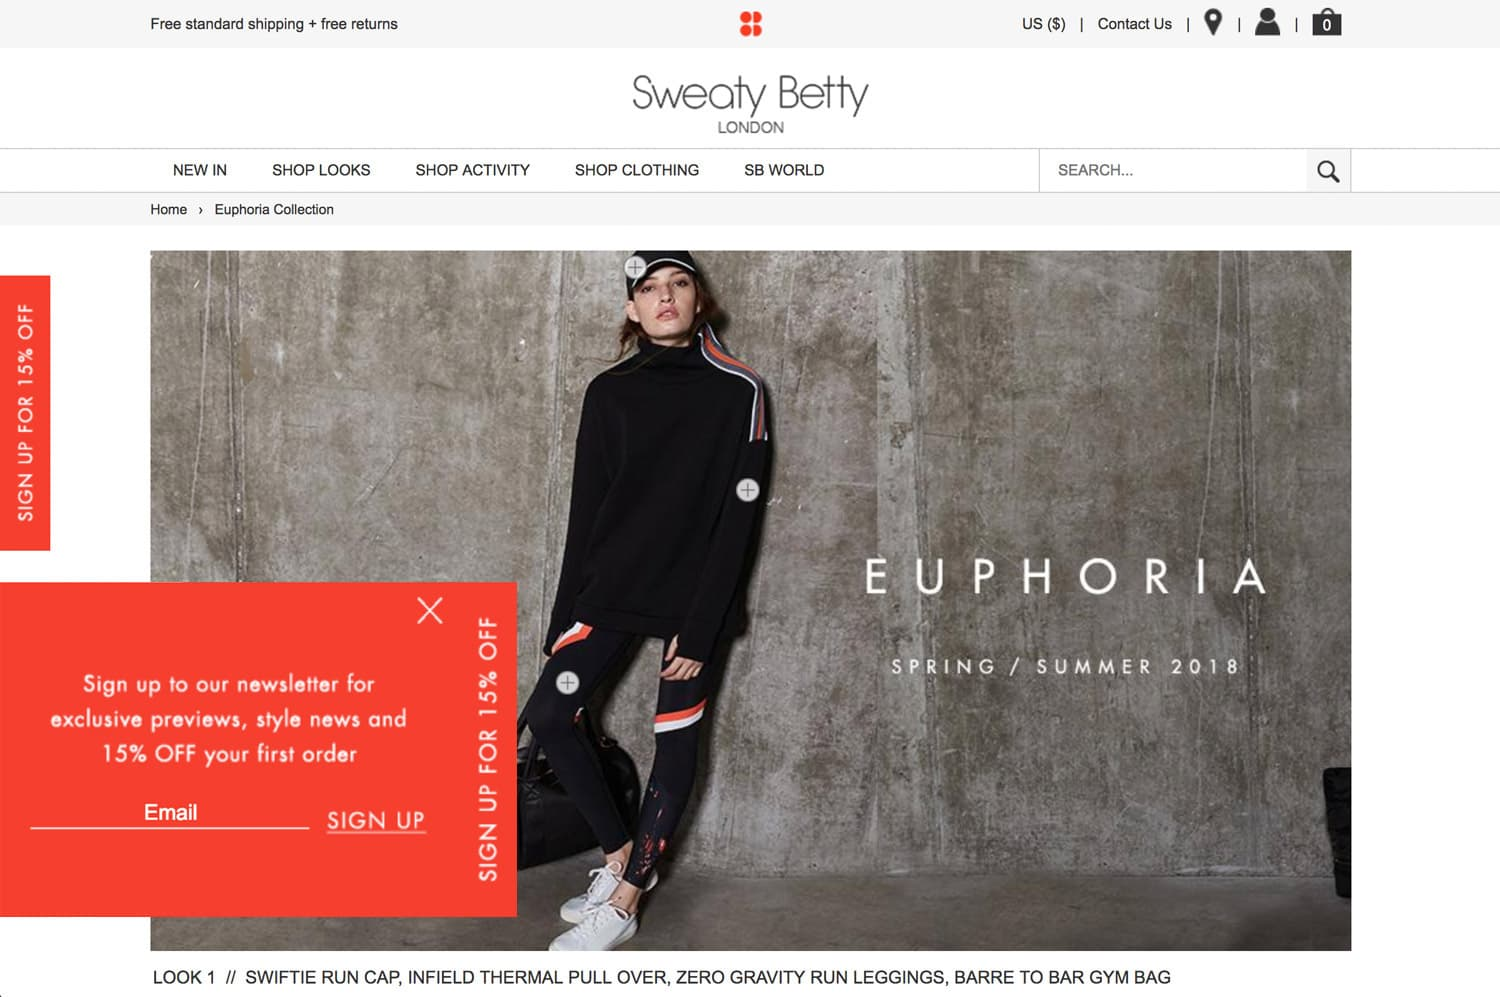 StickyBar_SweatyBetty